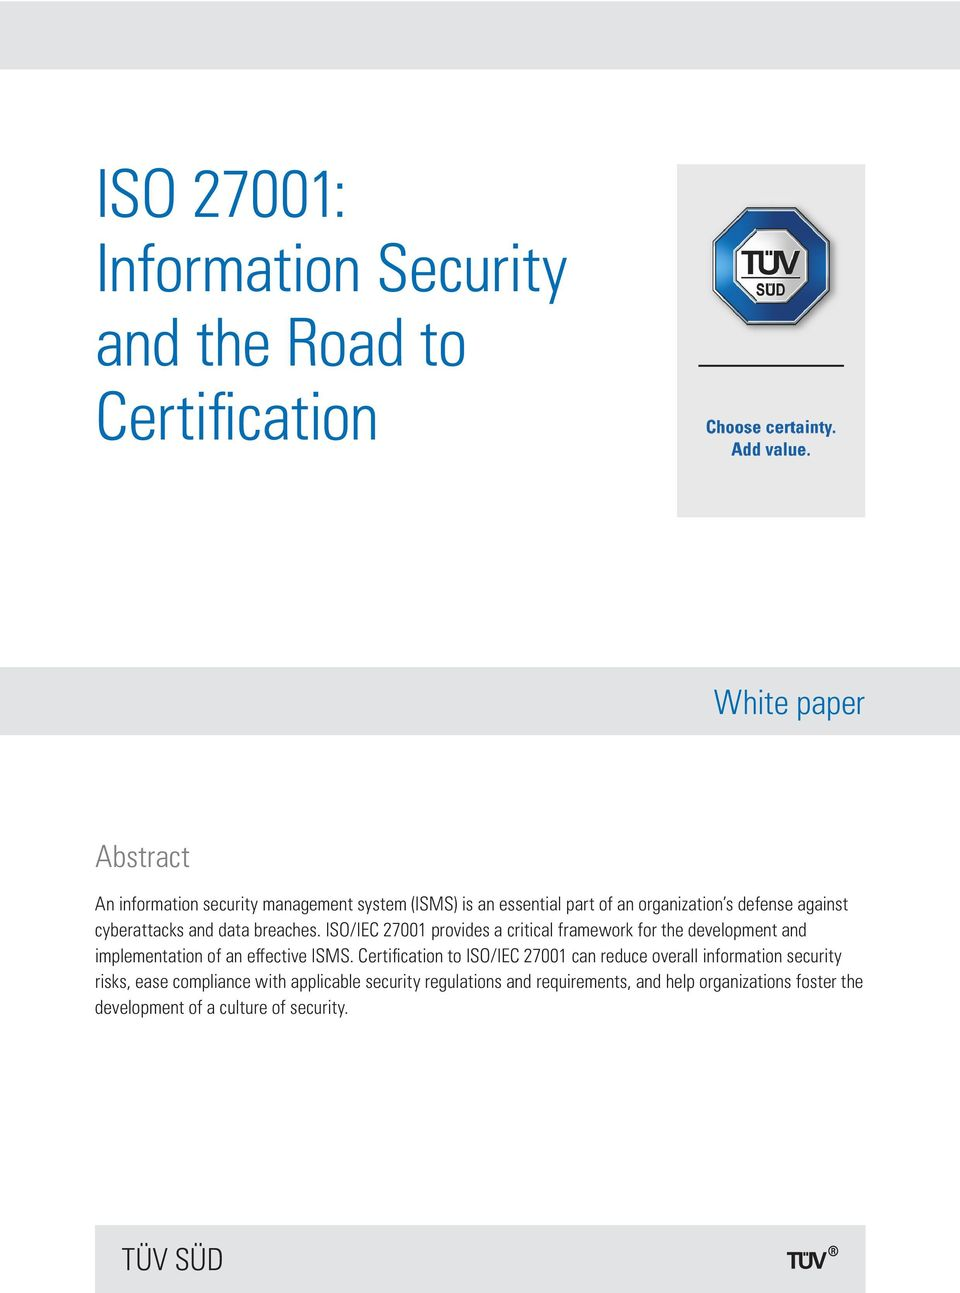 ISO/IEC 27001 provides a critical framework for the development and implementation of an effective ISMS.